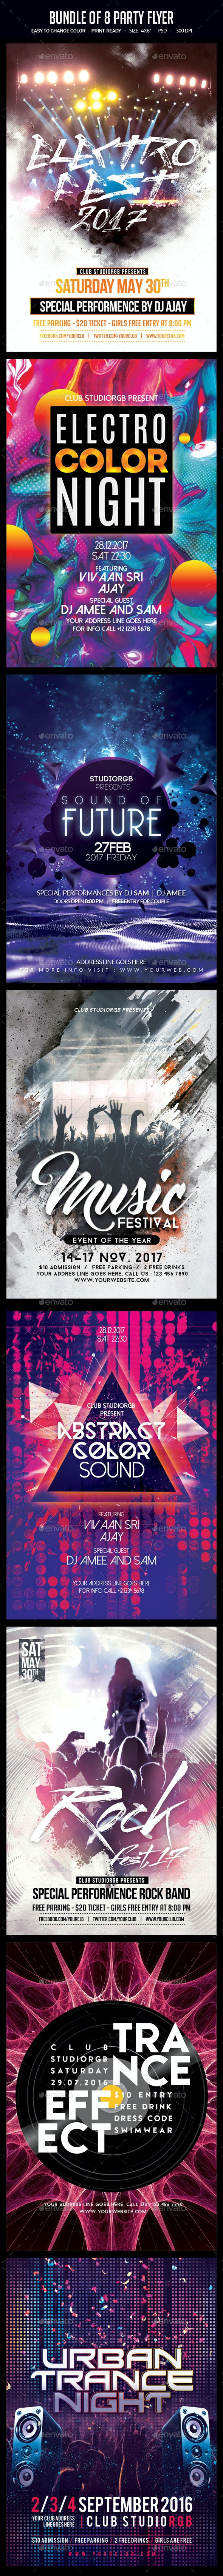 Bundle of 8 Music Party Flyers - Clubs & Parties Events